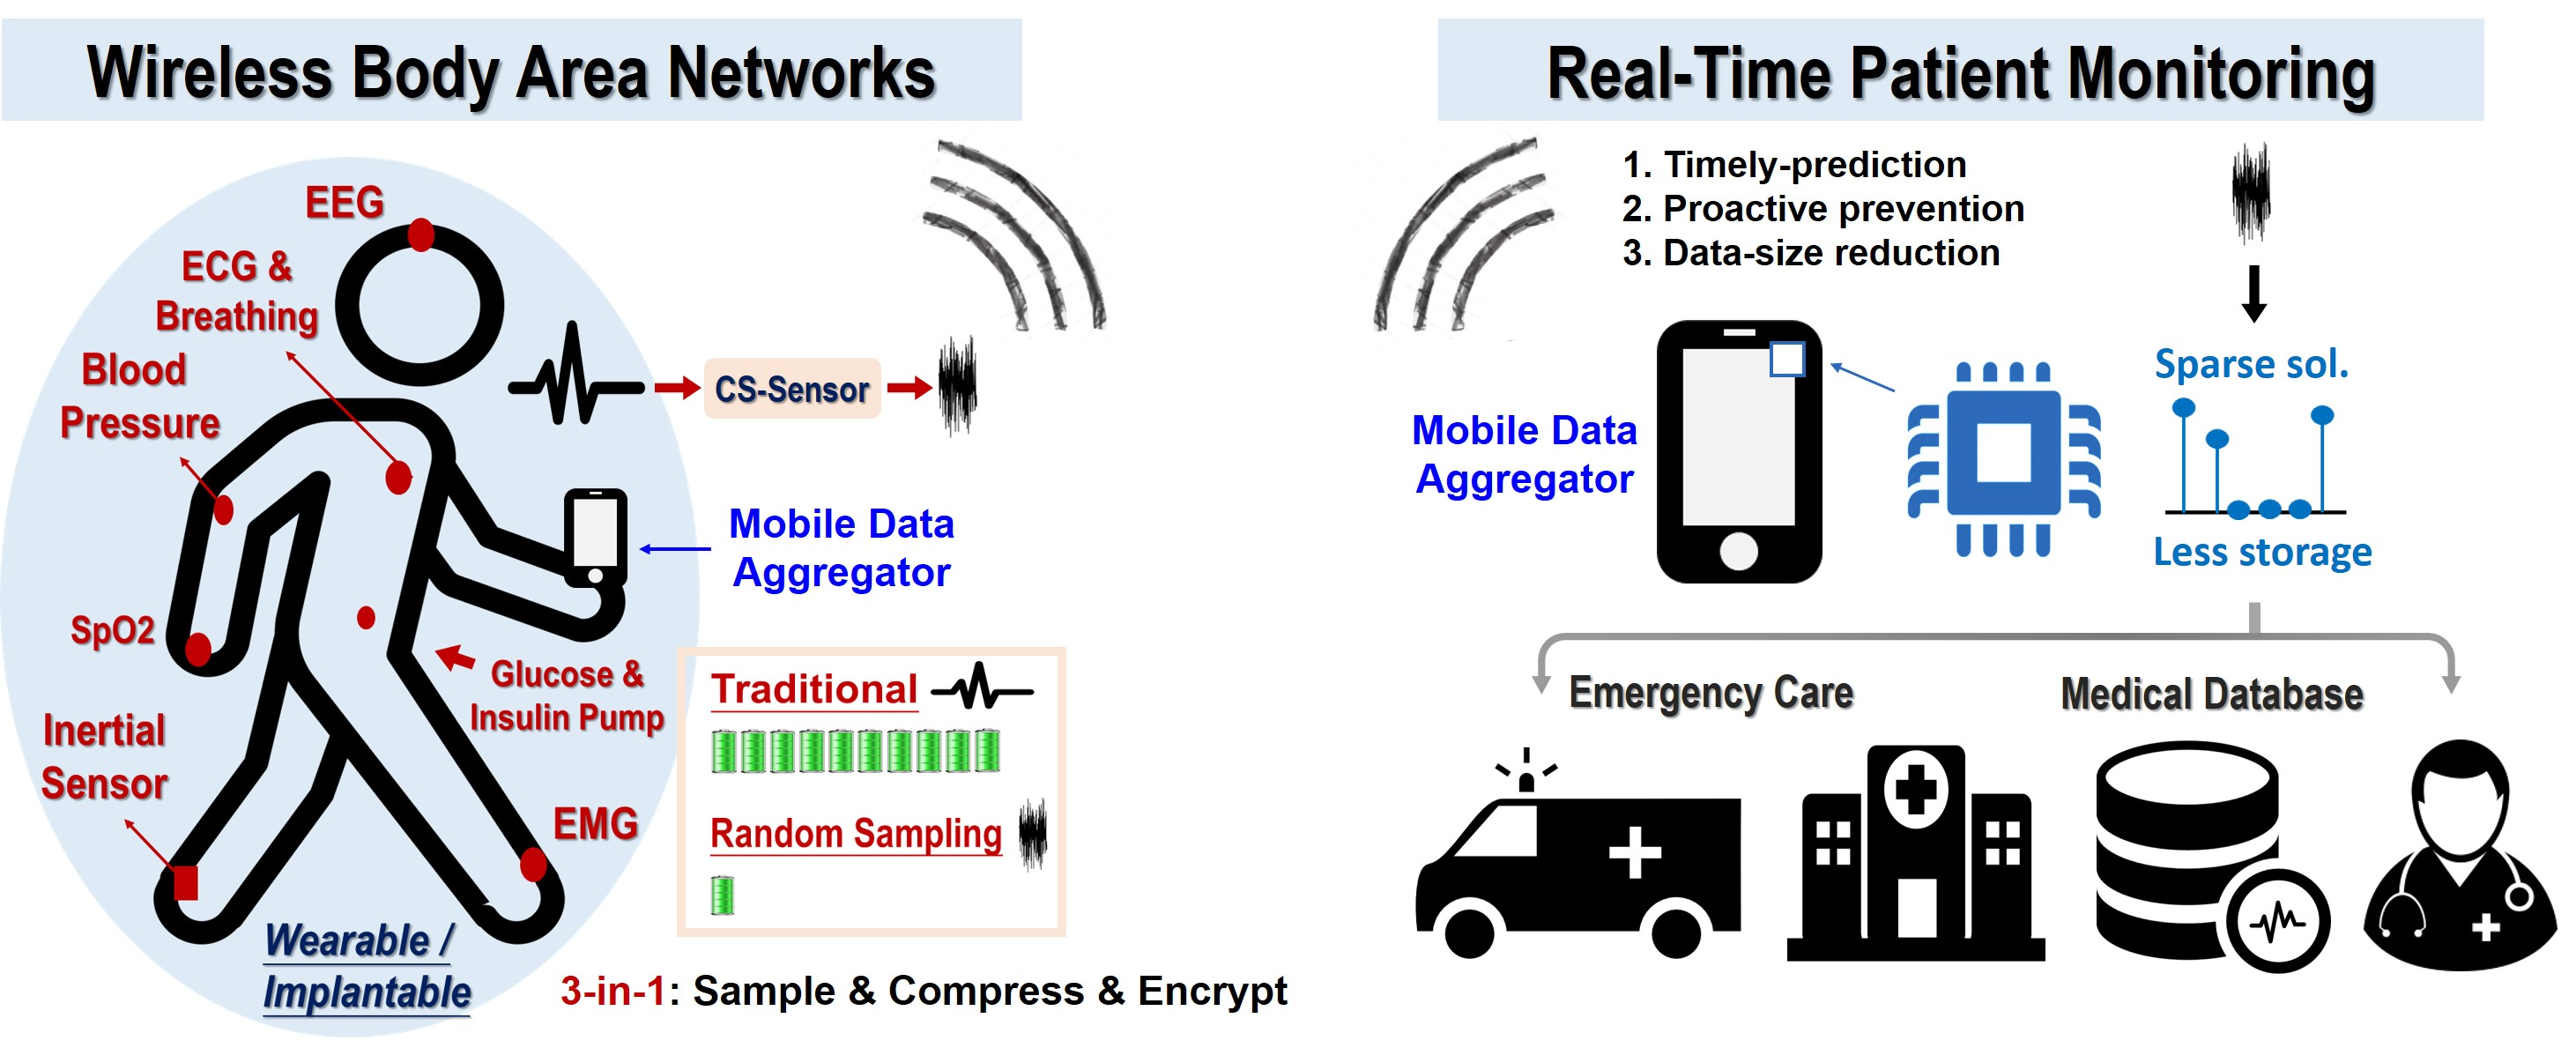 Compressive Sensing (CS) TechnologiesCircuit Implementations for Wireless Healthcare SystemFuture 5G Mobile Communication Systems